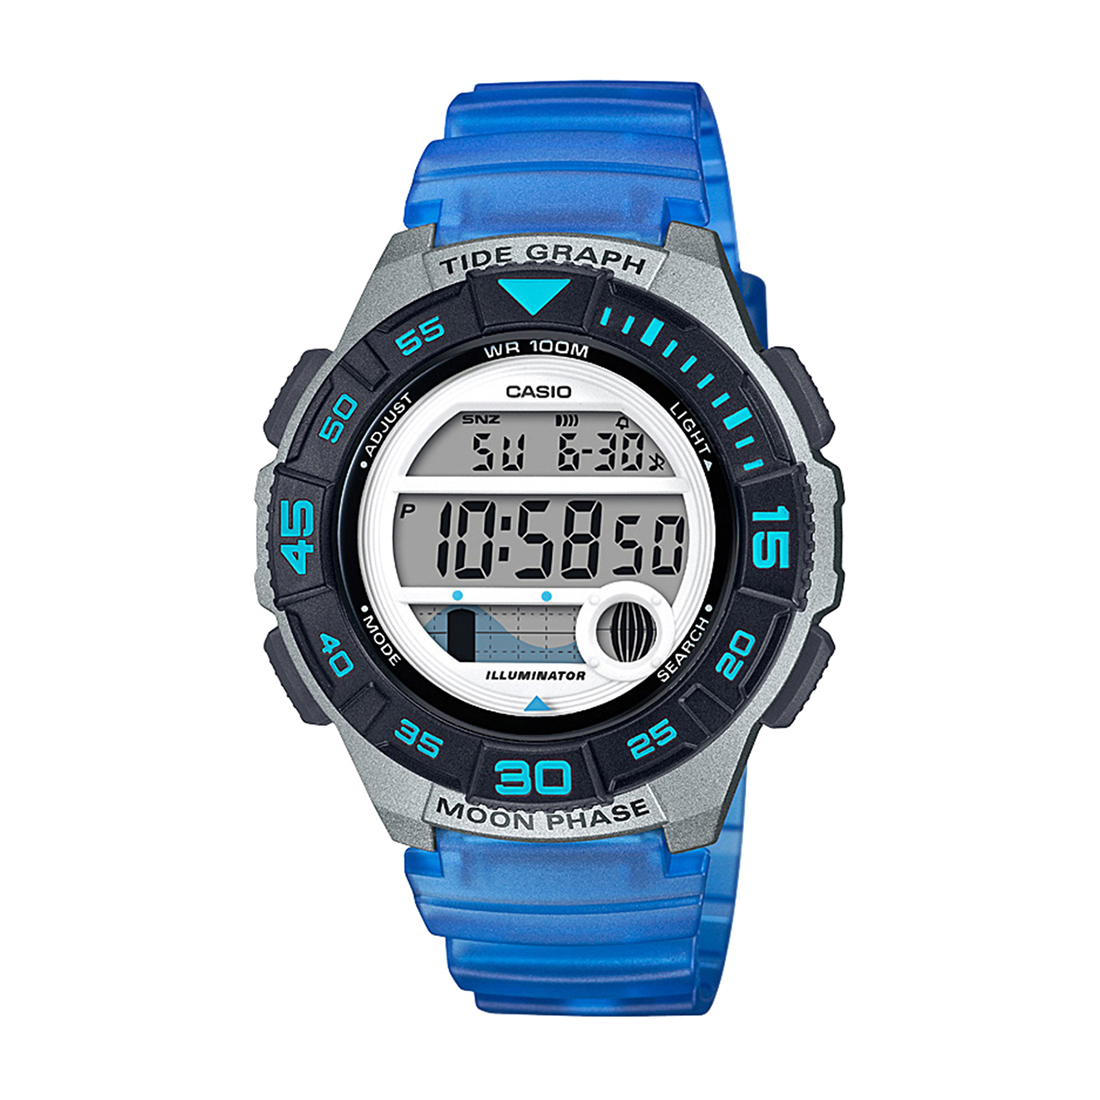 A1720 LWS-1100H-2AVDF YOUTH DIGITAL WATCH-A1720